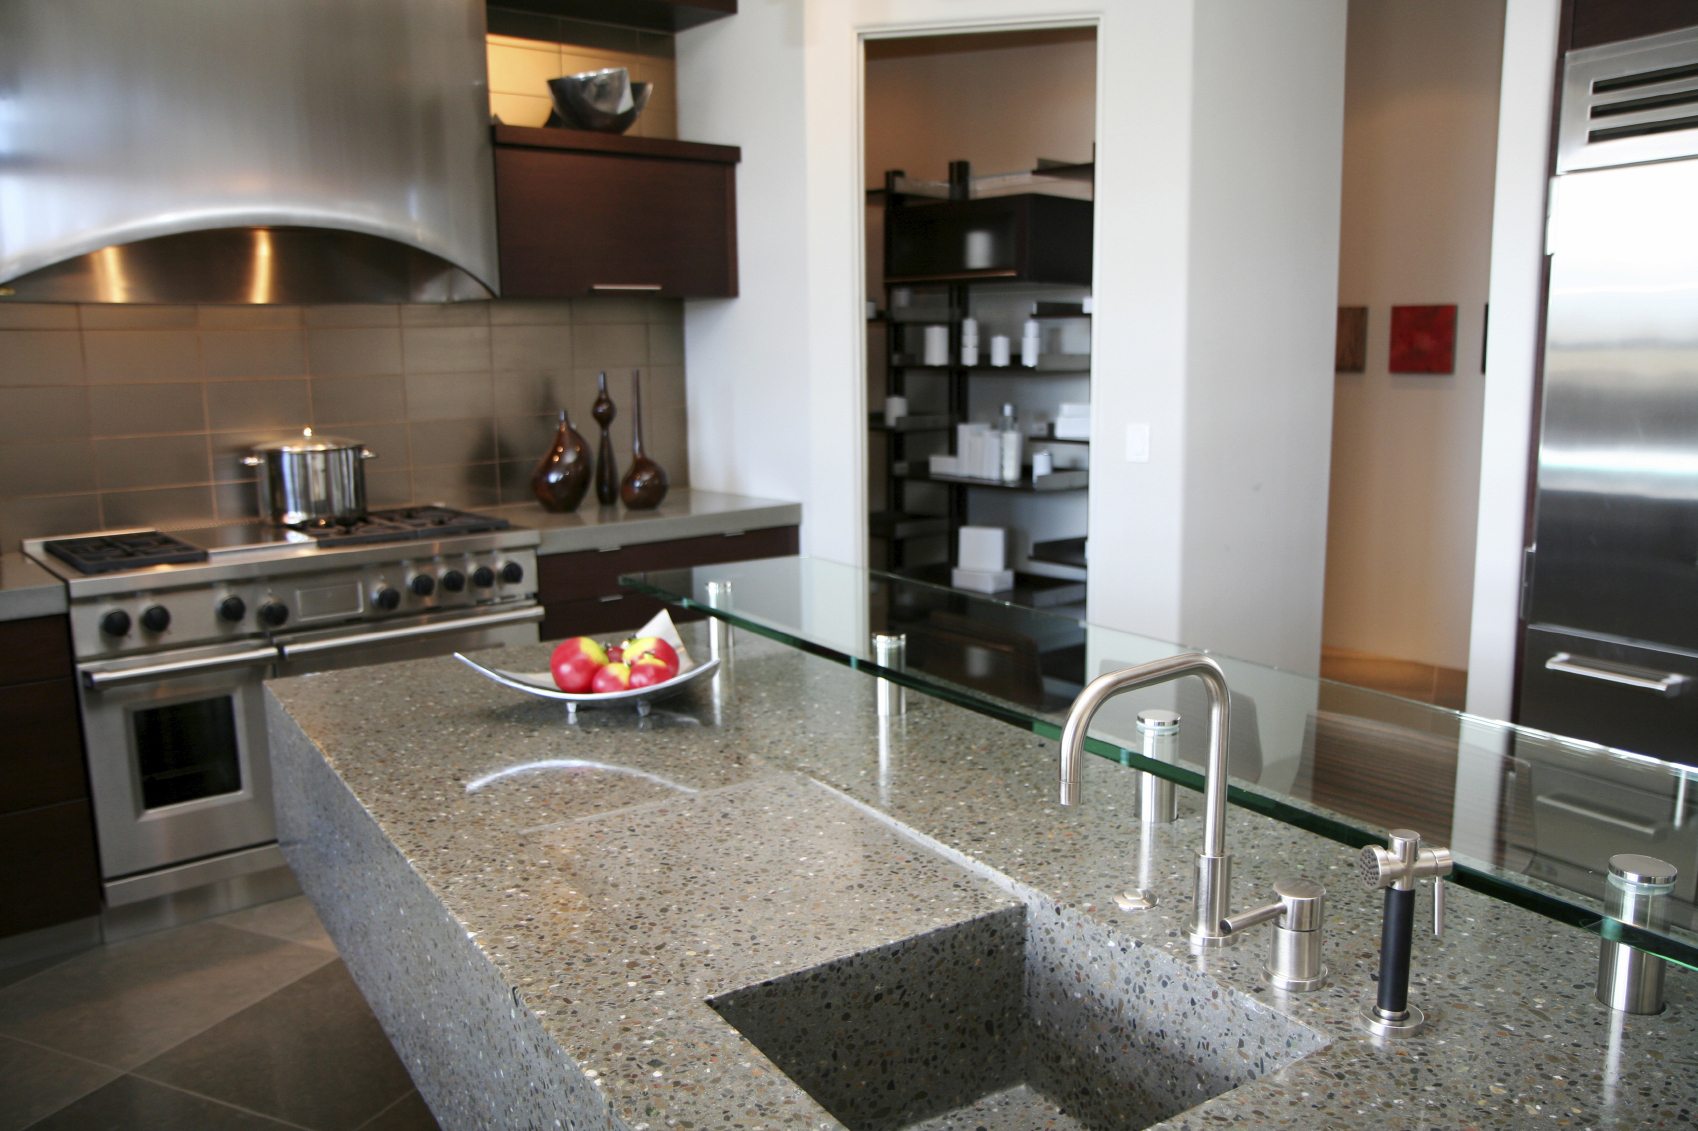 Oven cleaning specialist and principal of redlands oven for Oven cleaner on kitchen countertops